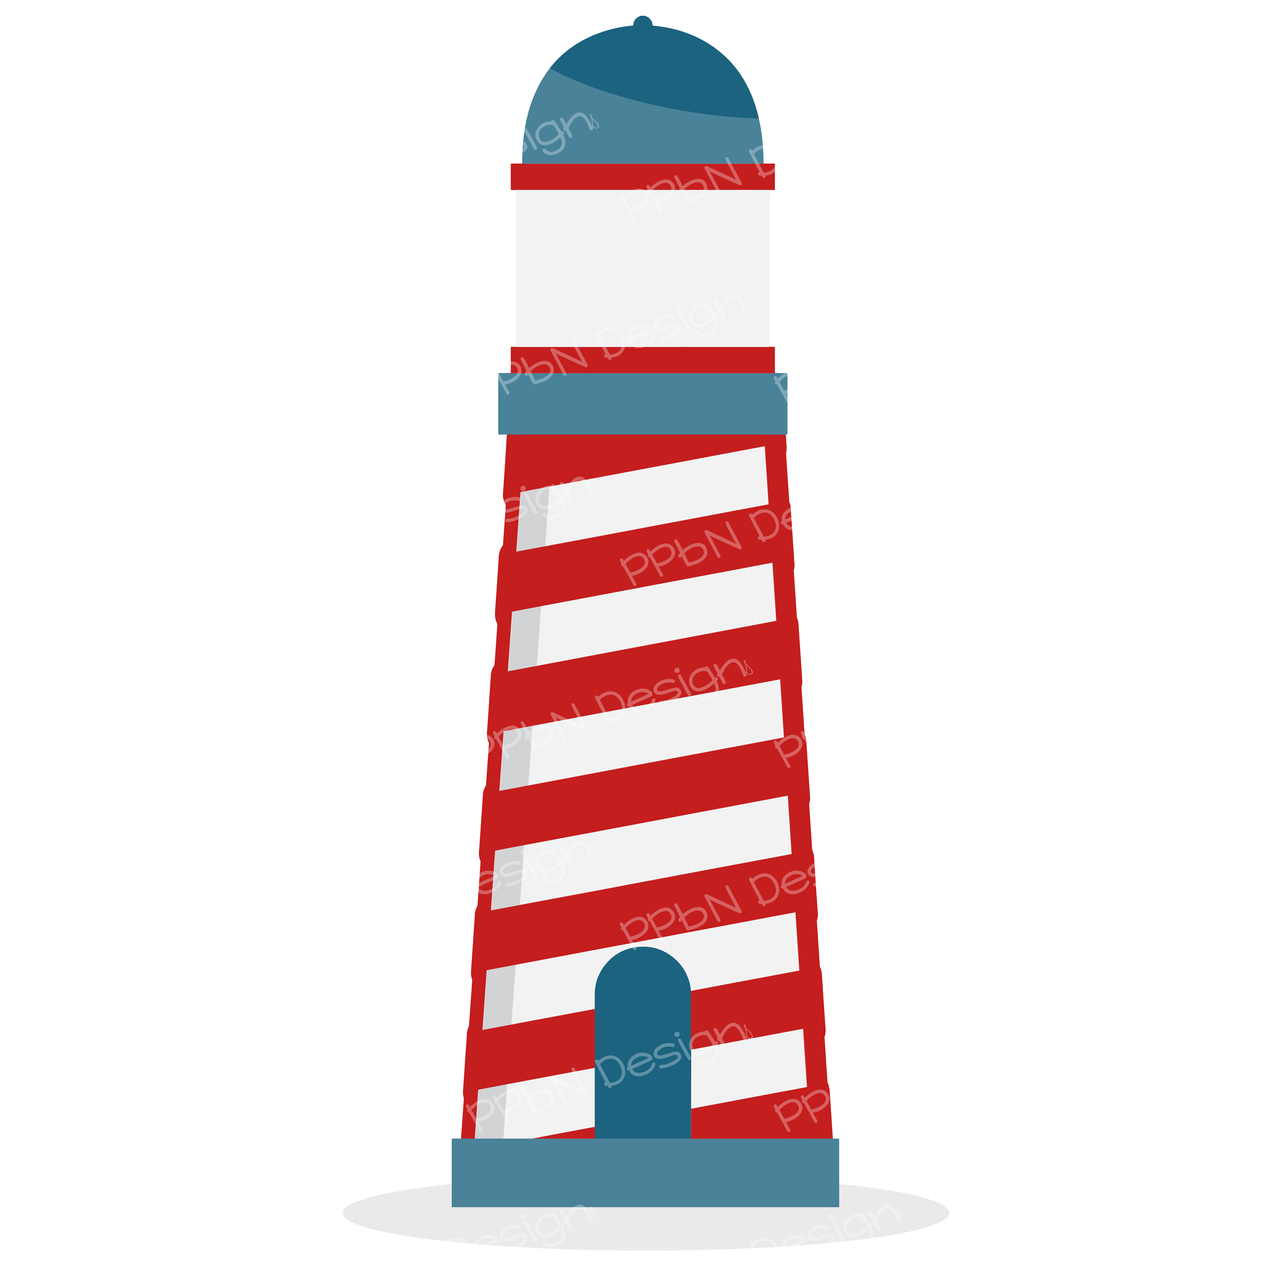 1280x1280 Lighthouse Clipart Yellow Many Interesting Cliparts